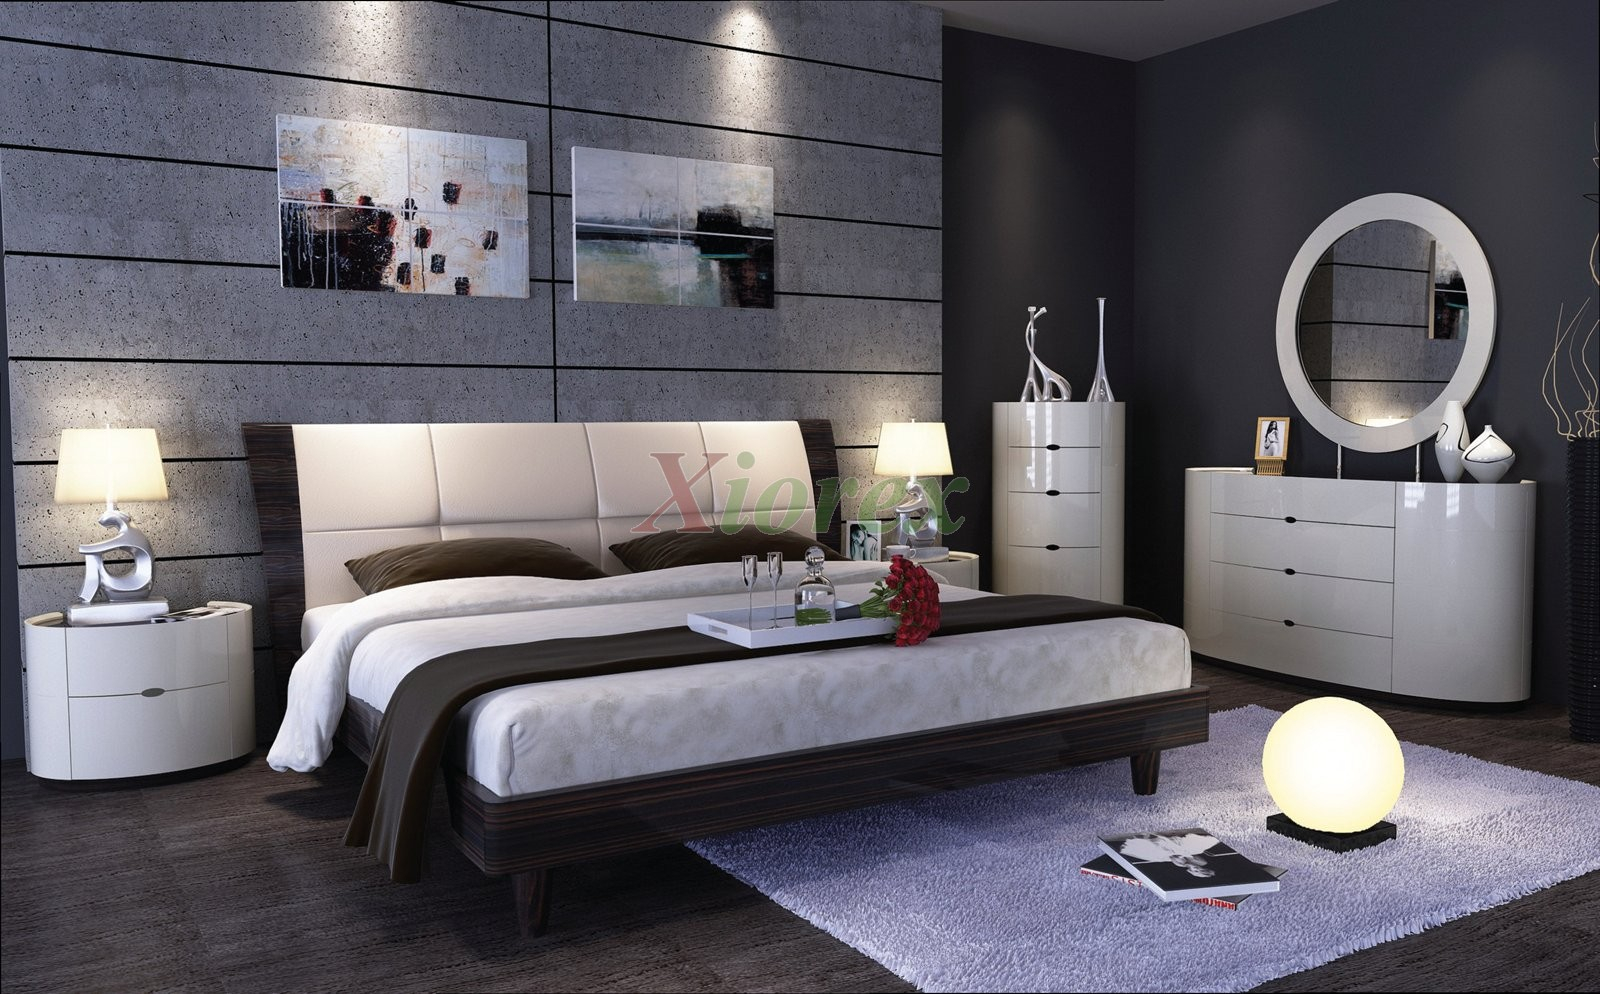 Modern Bedroom Sets Furniture Modern Bedroom Sets And Decoration in 13 Awesome Ideas How to Craft Modern Bedroom Sets